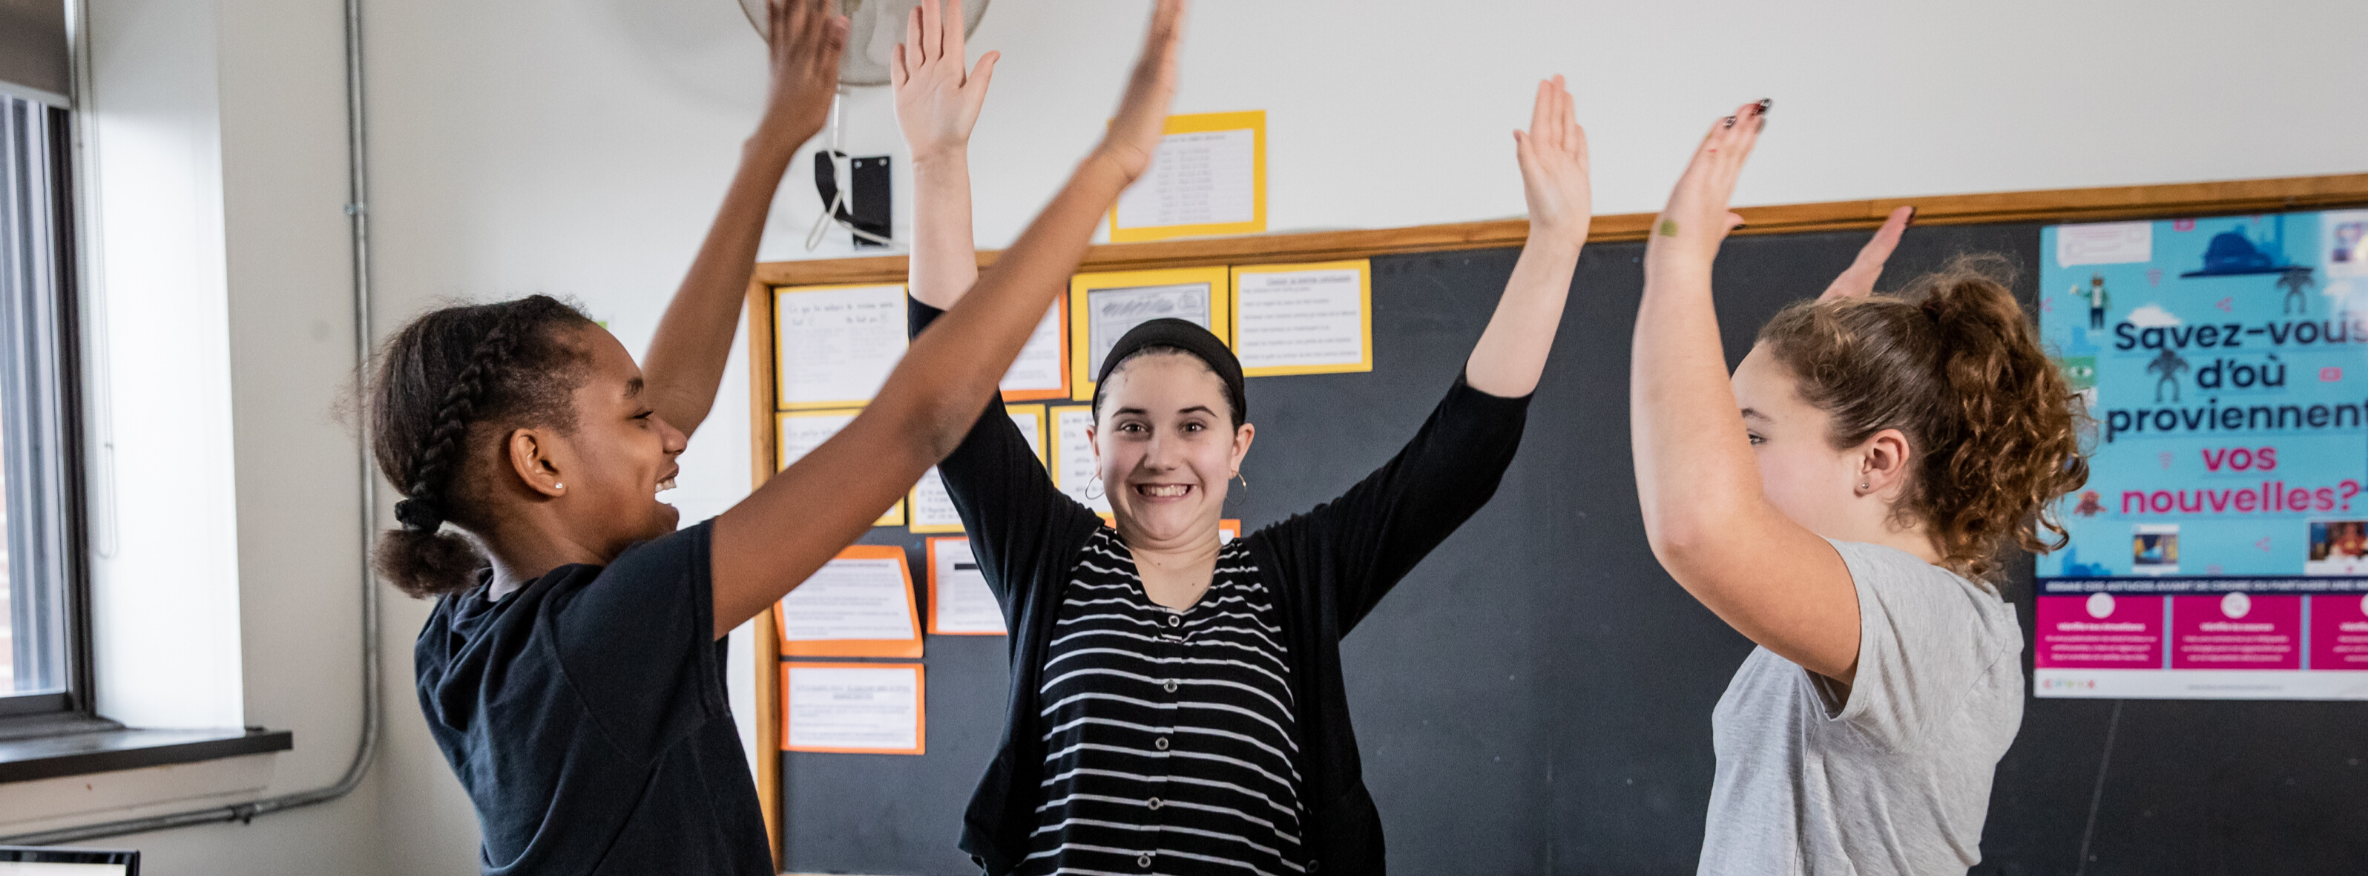 Students high-fiving in the classroom